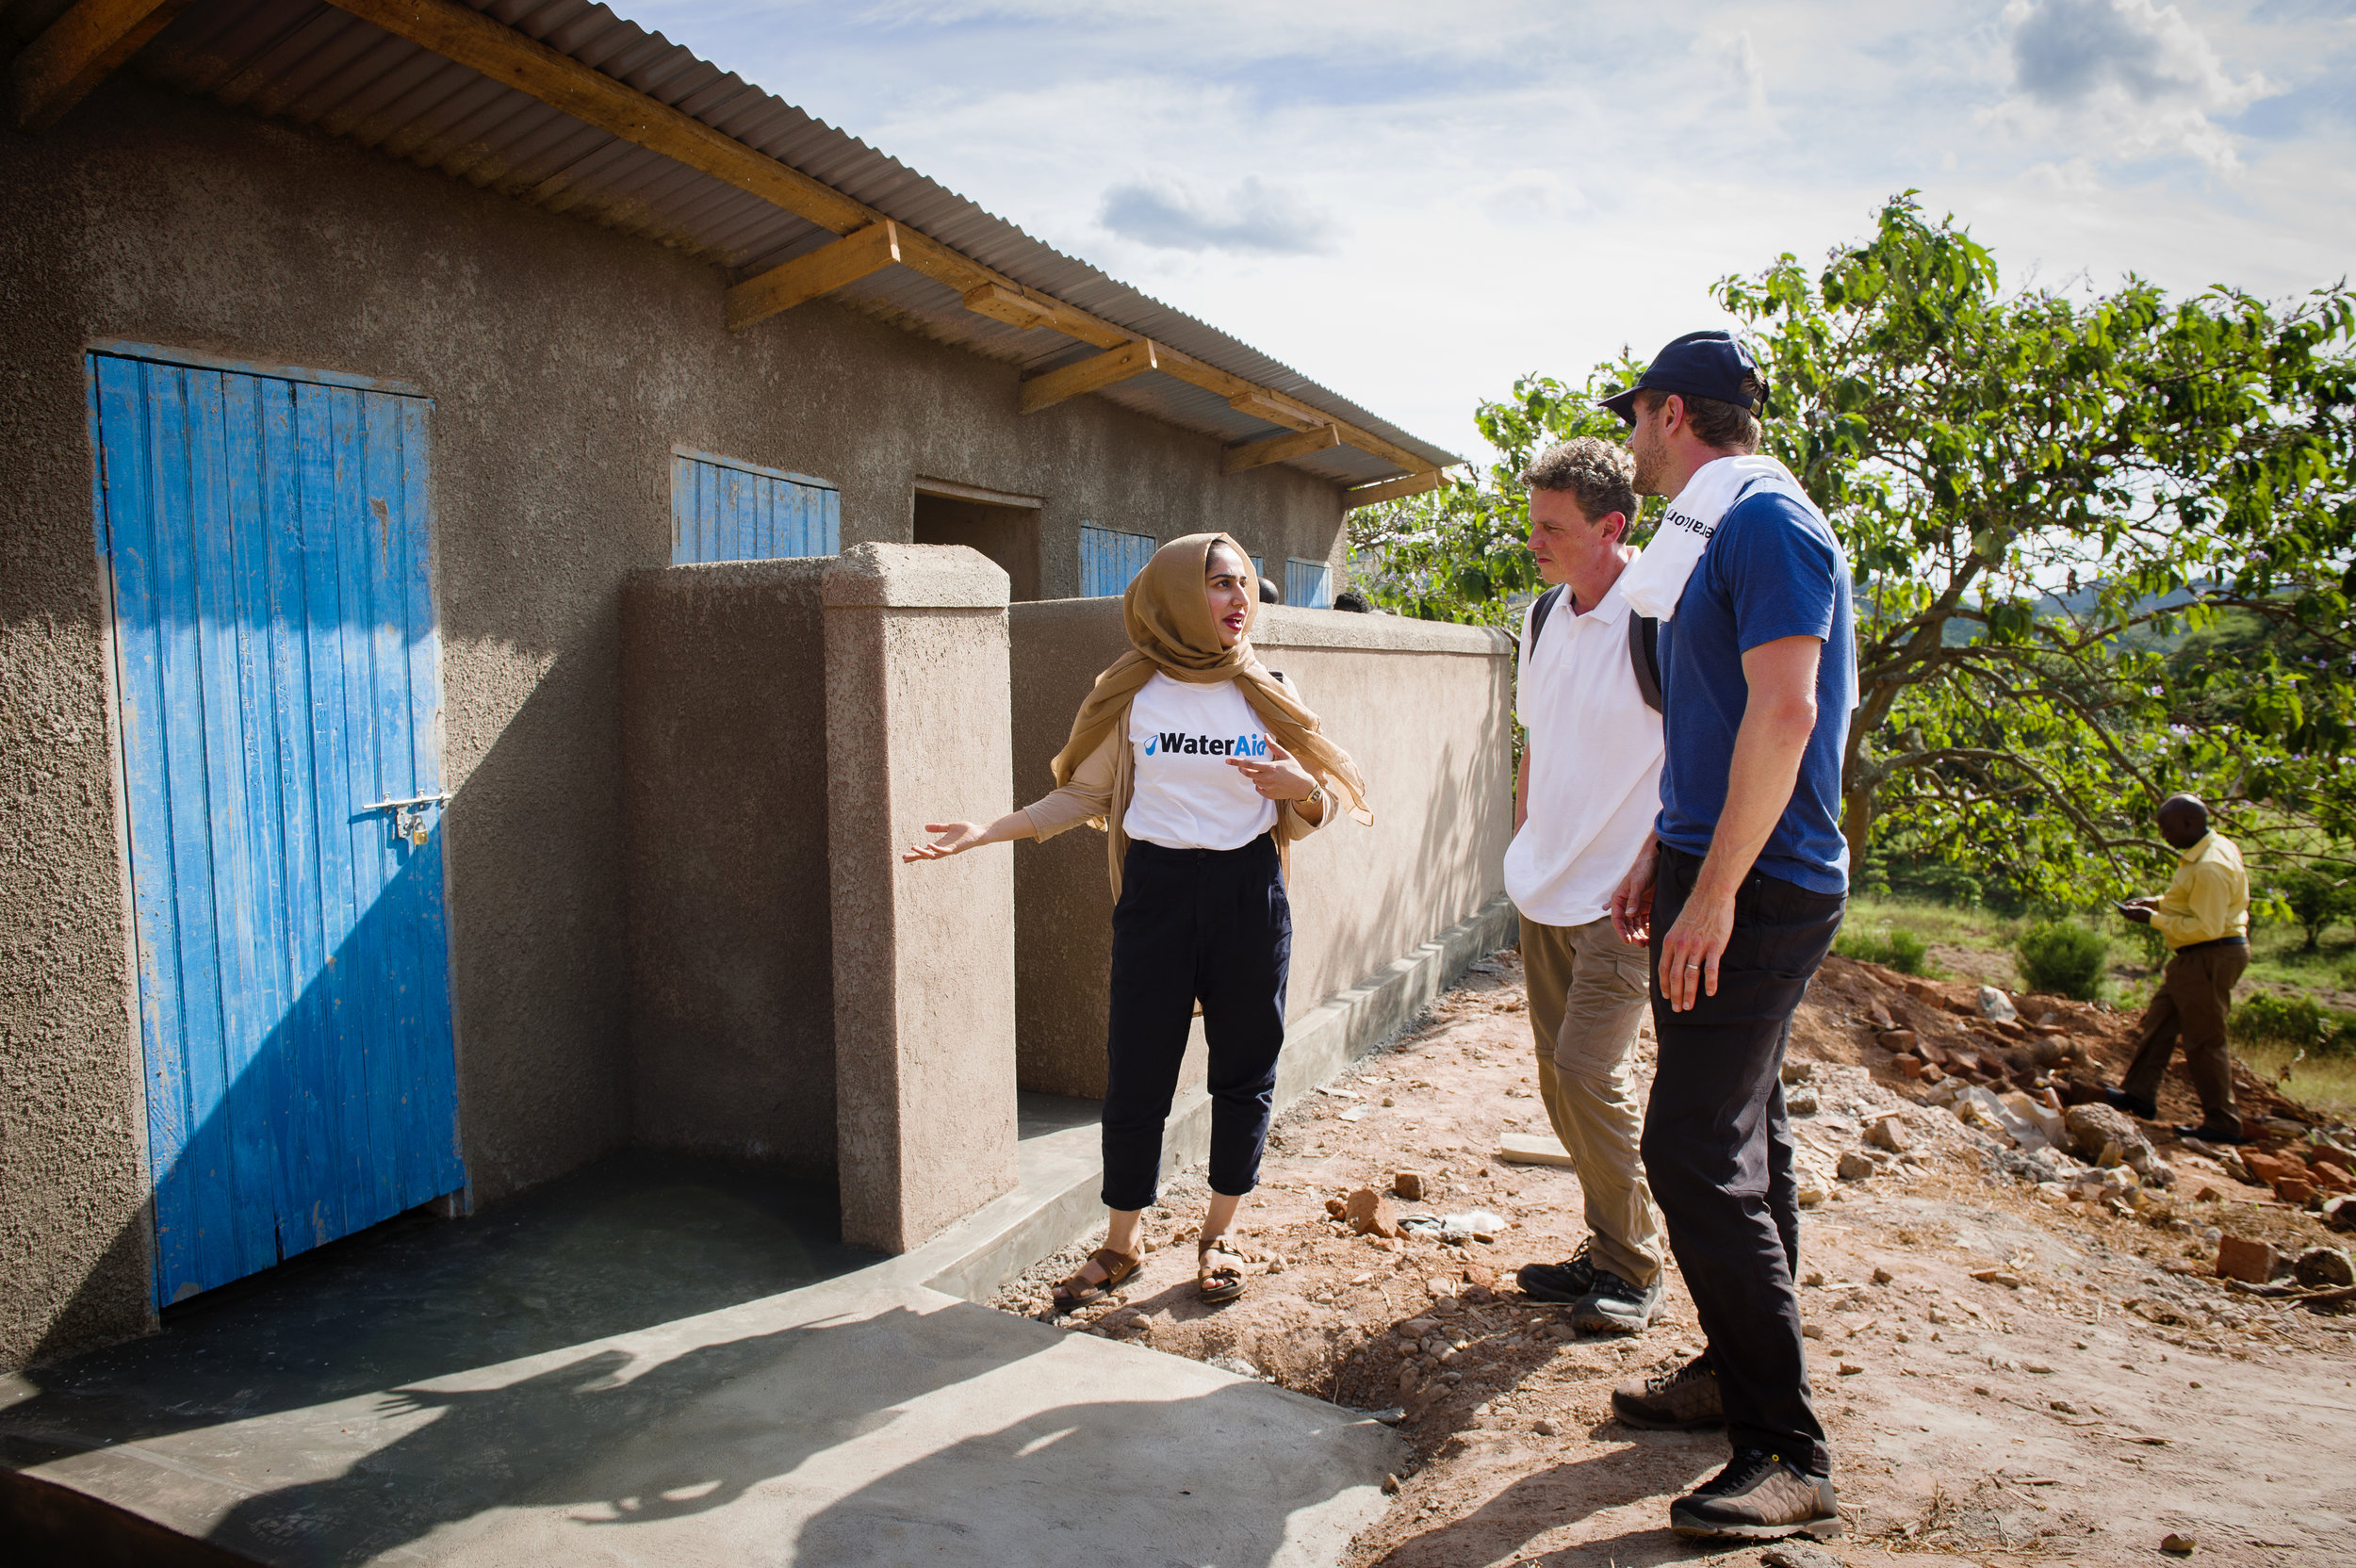 (Left) Old latrine blocks and (Right) new   latrine blocks at Kikoda Primary School, Uganda, which were funded by Project Waterfall in partnership with Wateraid UK.